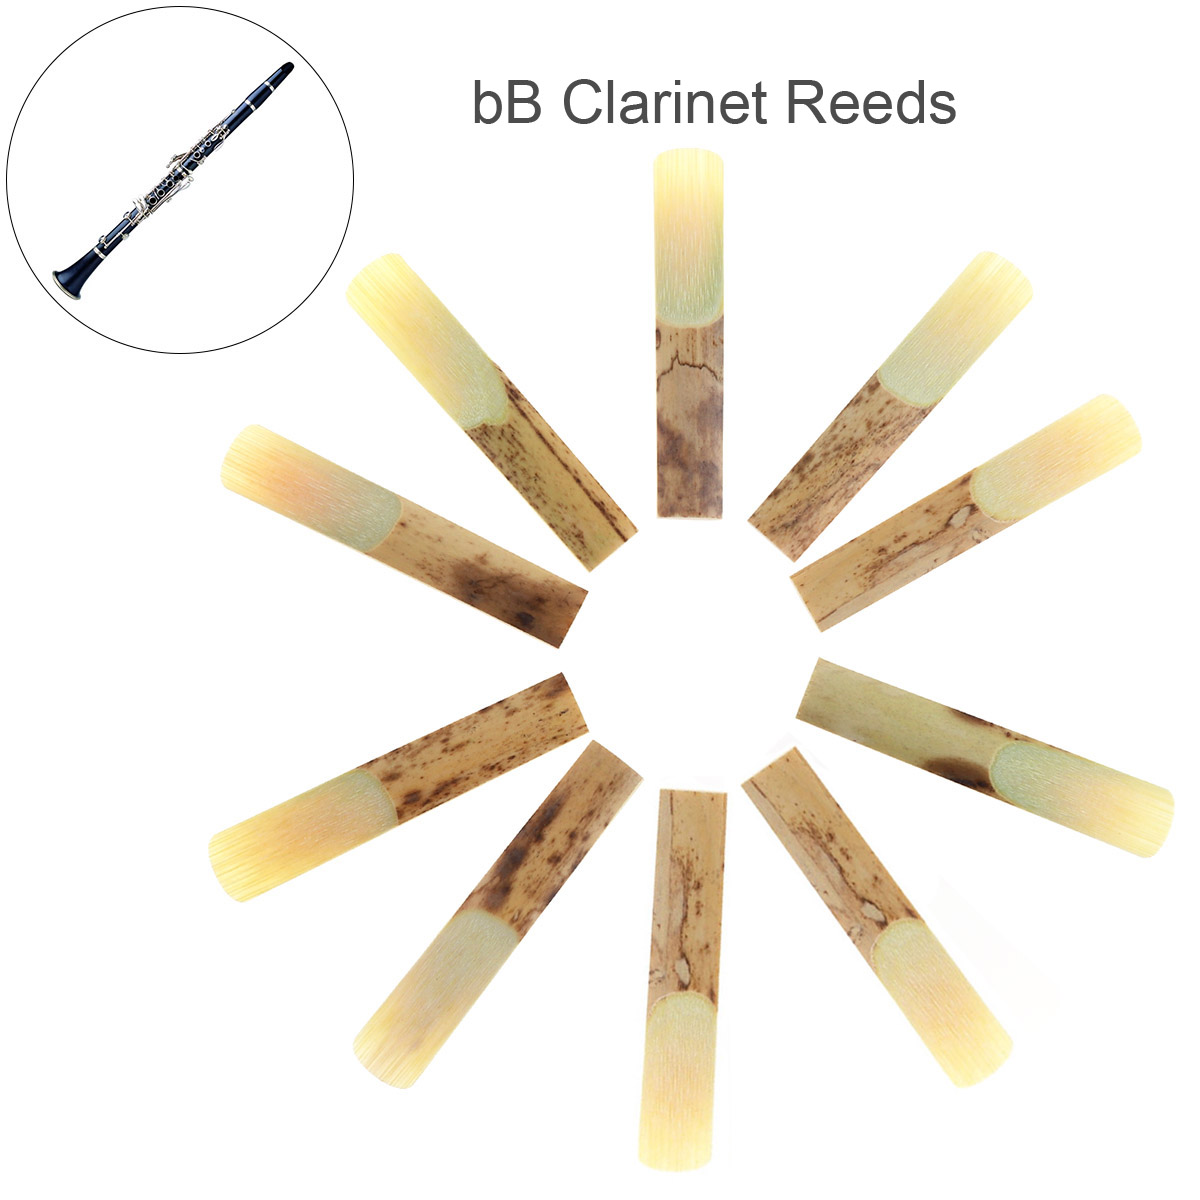 Hearty New 10pcs Professional Bamboo Bb Clarinet Reeds Strength 2.5 For Clarinet Mouthpiece Parts Traditional Bamboo Reed Making Things Convenient For The People